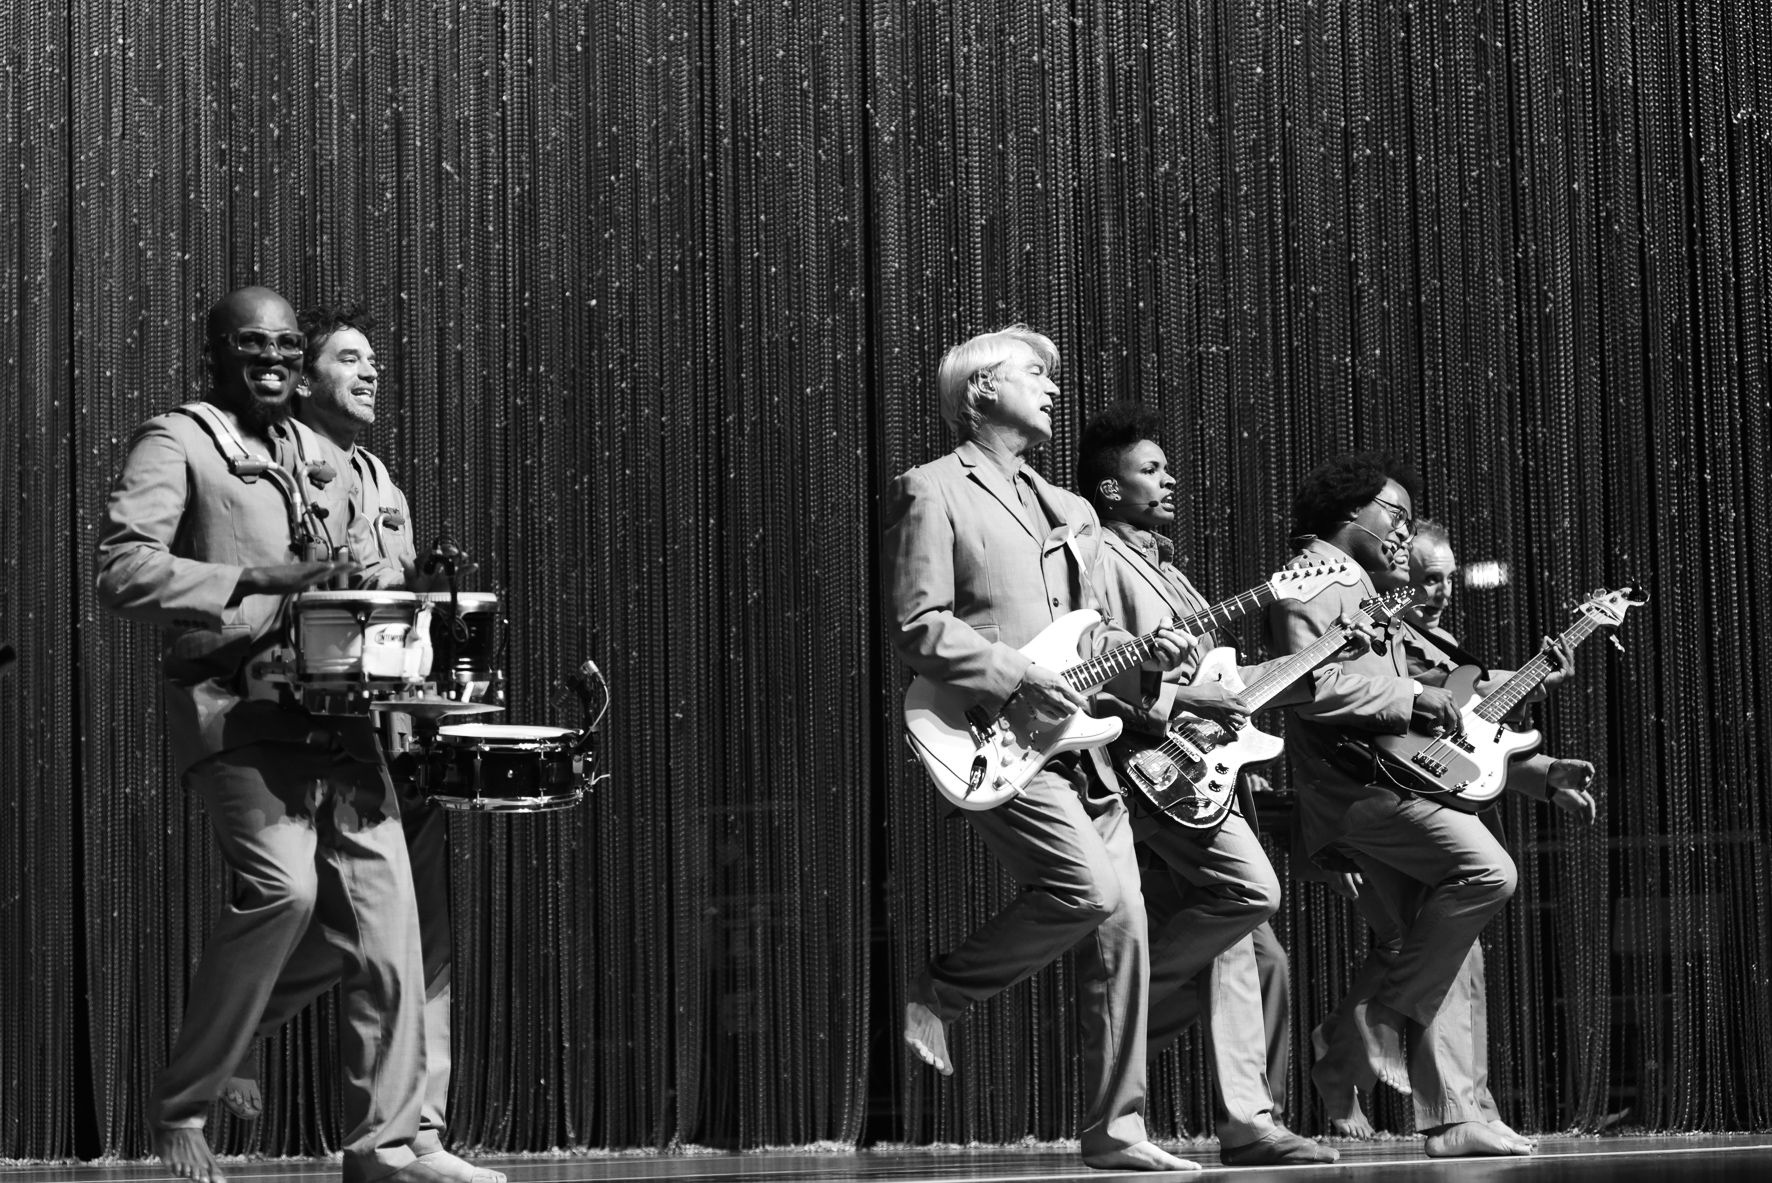 DAVID BYRNE BAND